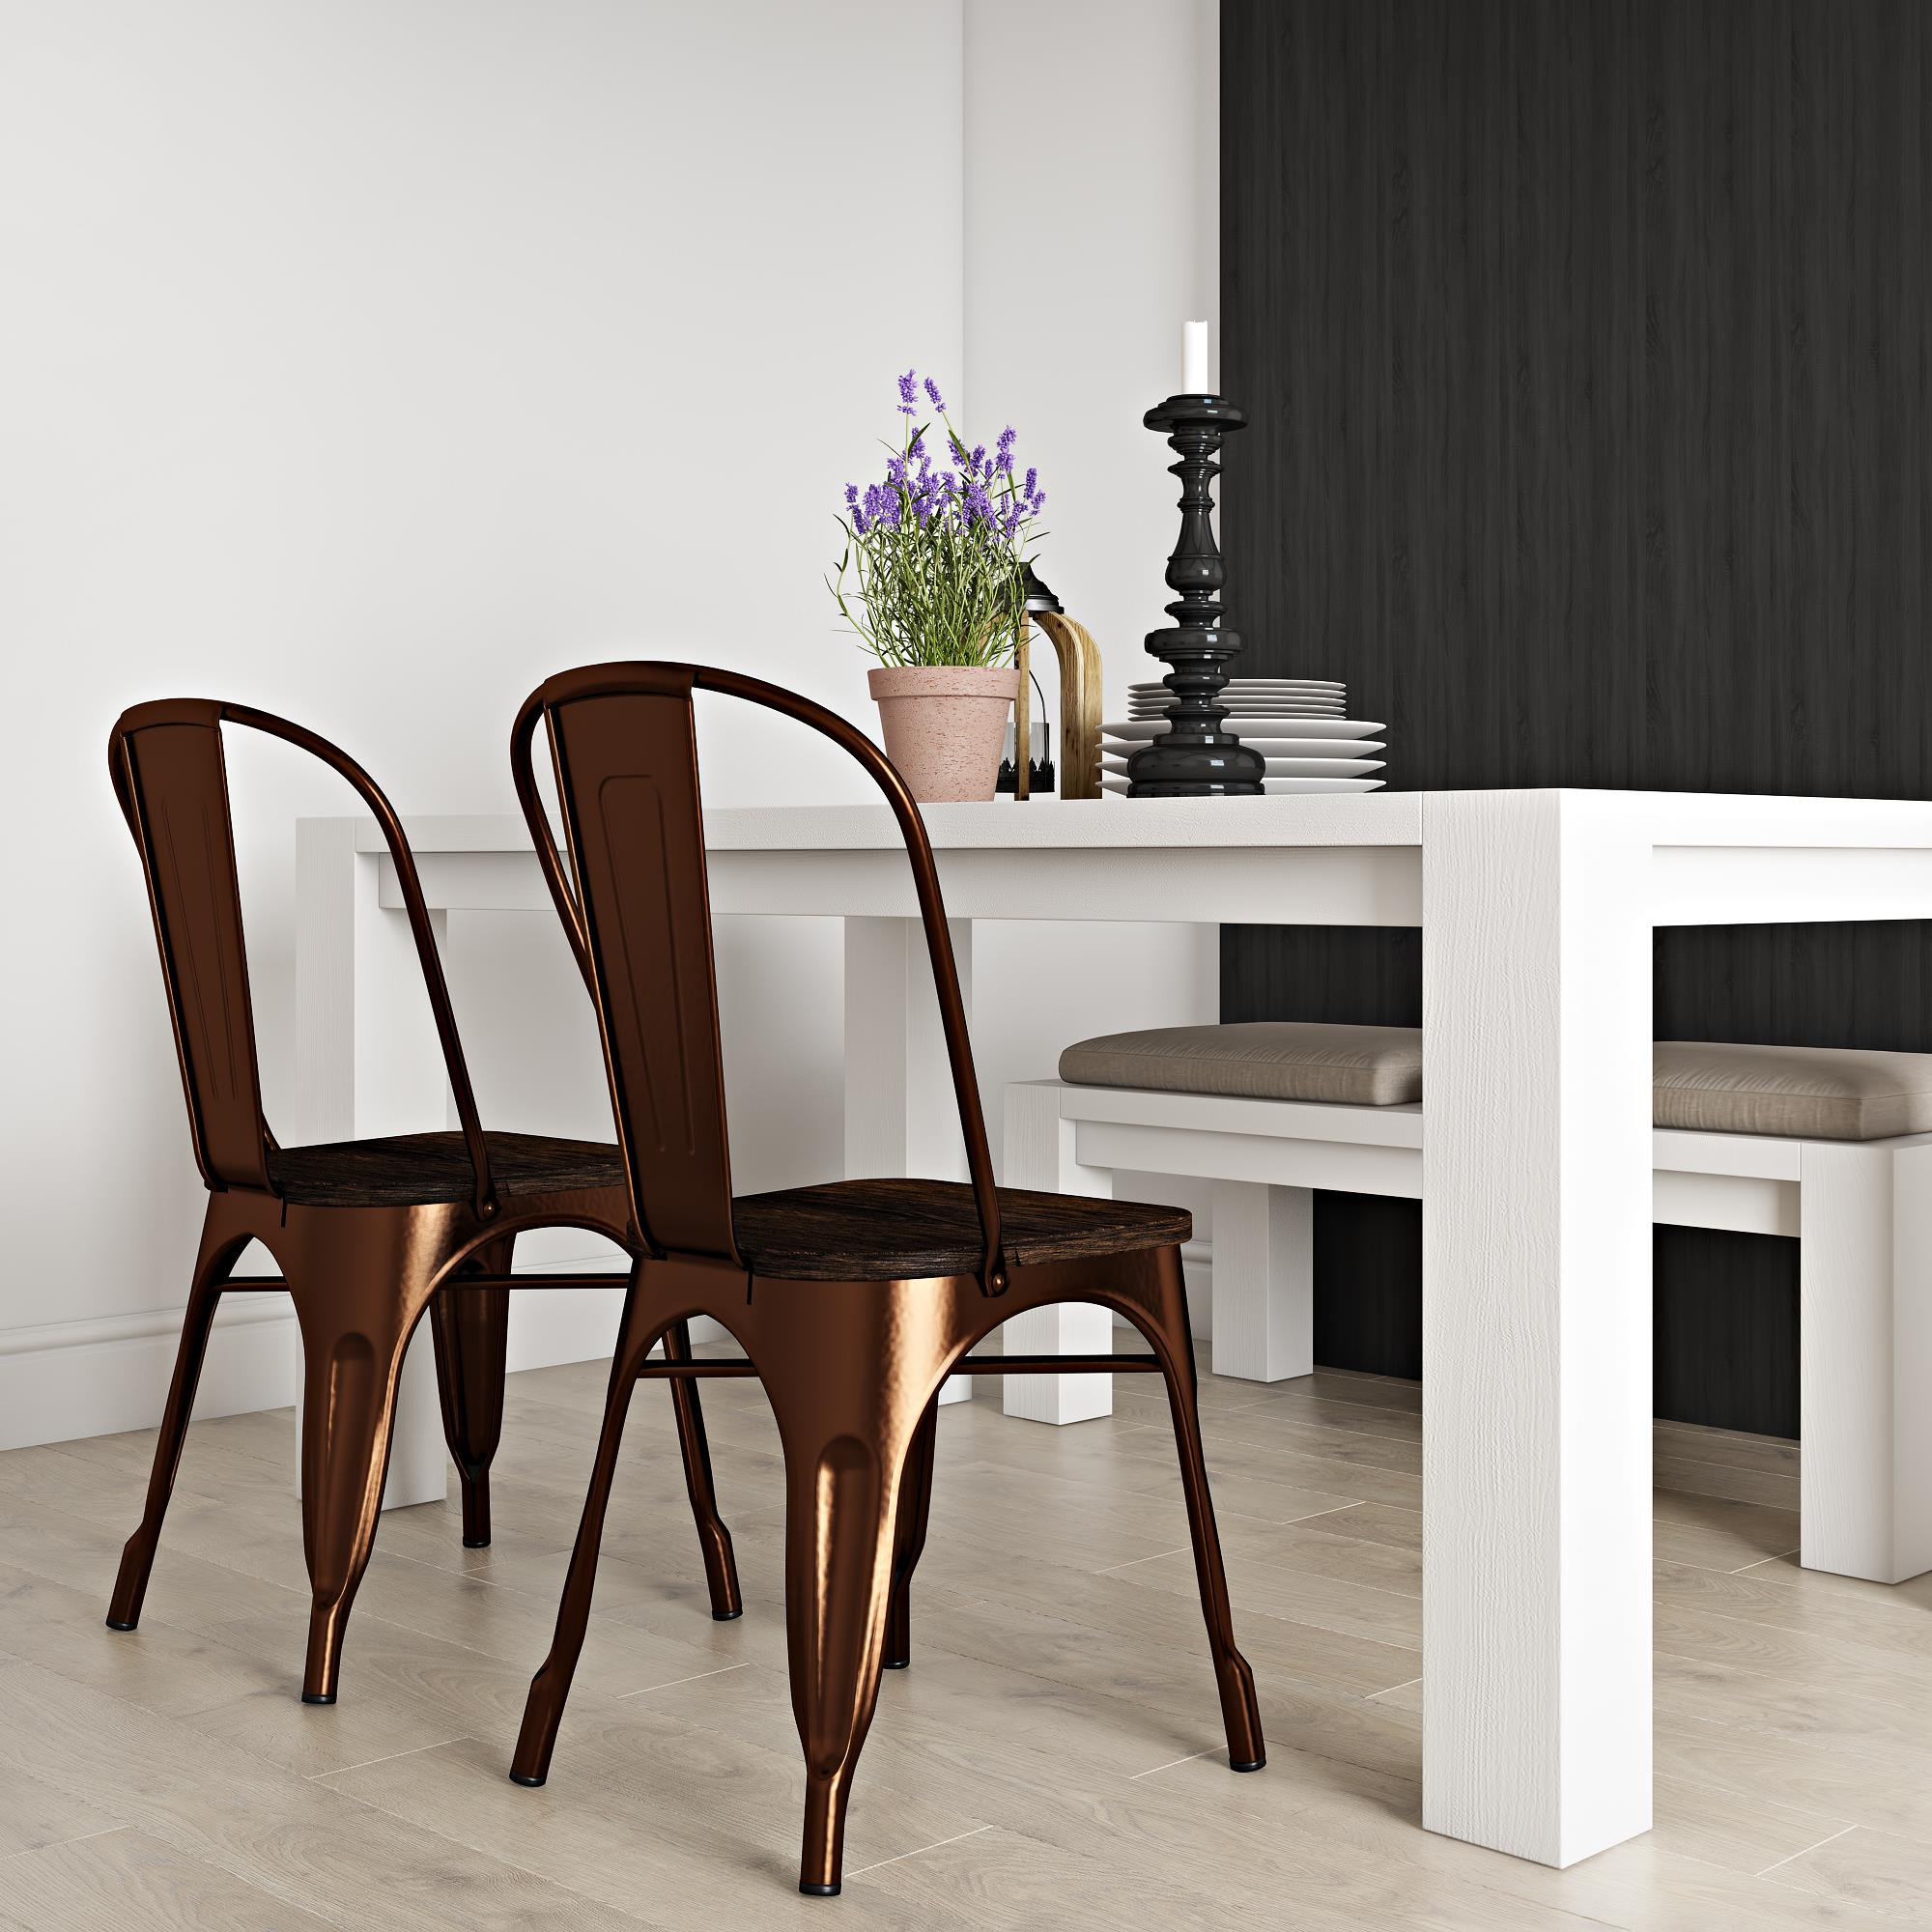 RealRooms Fanya Metal Dining Chair with wood seat, Set of 2, Multiple Colors